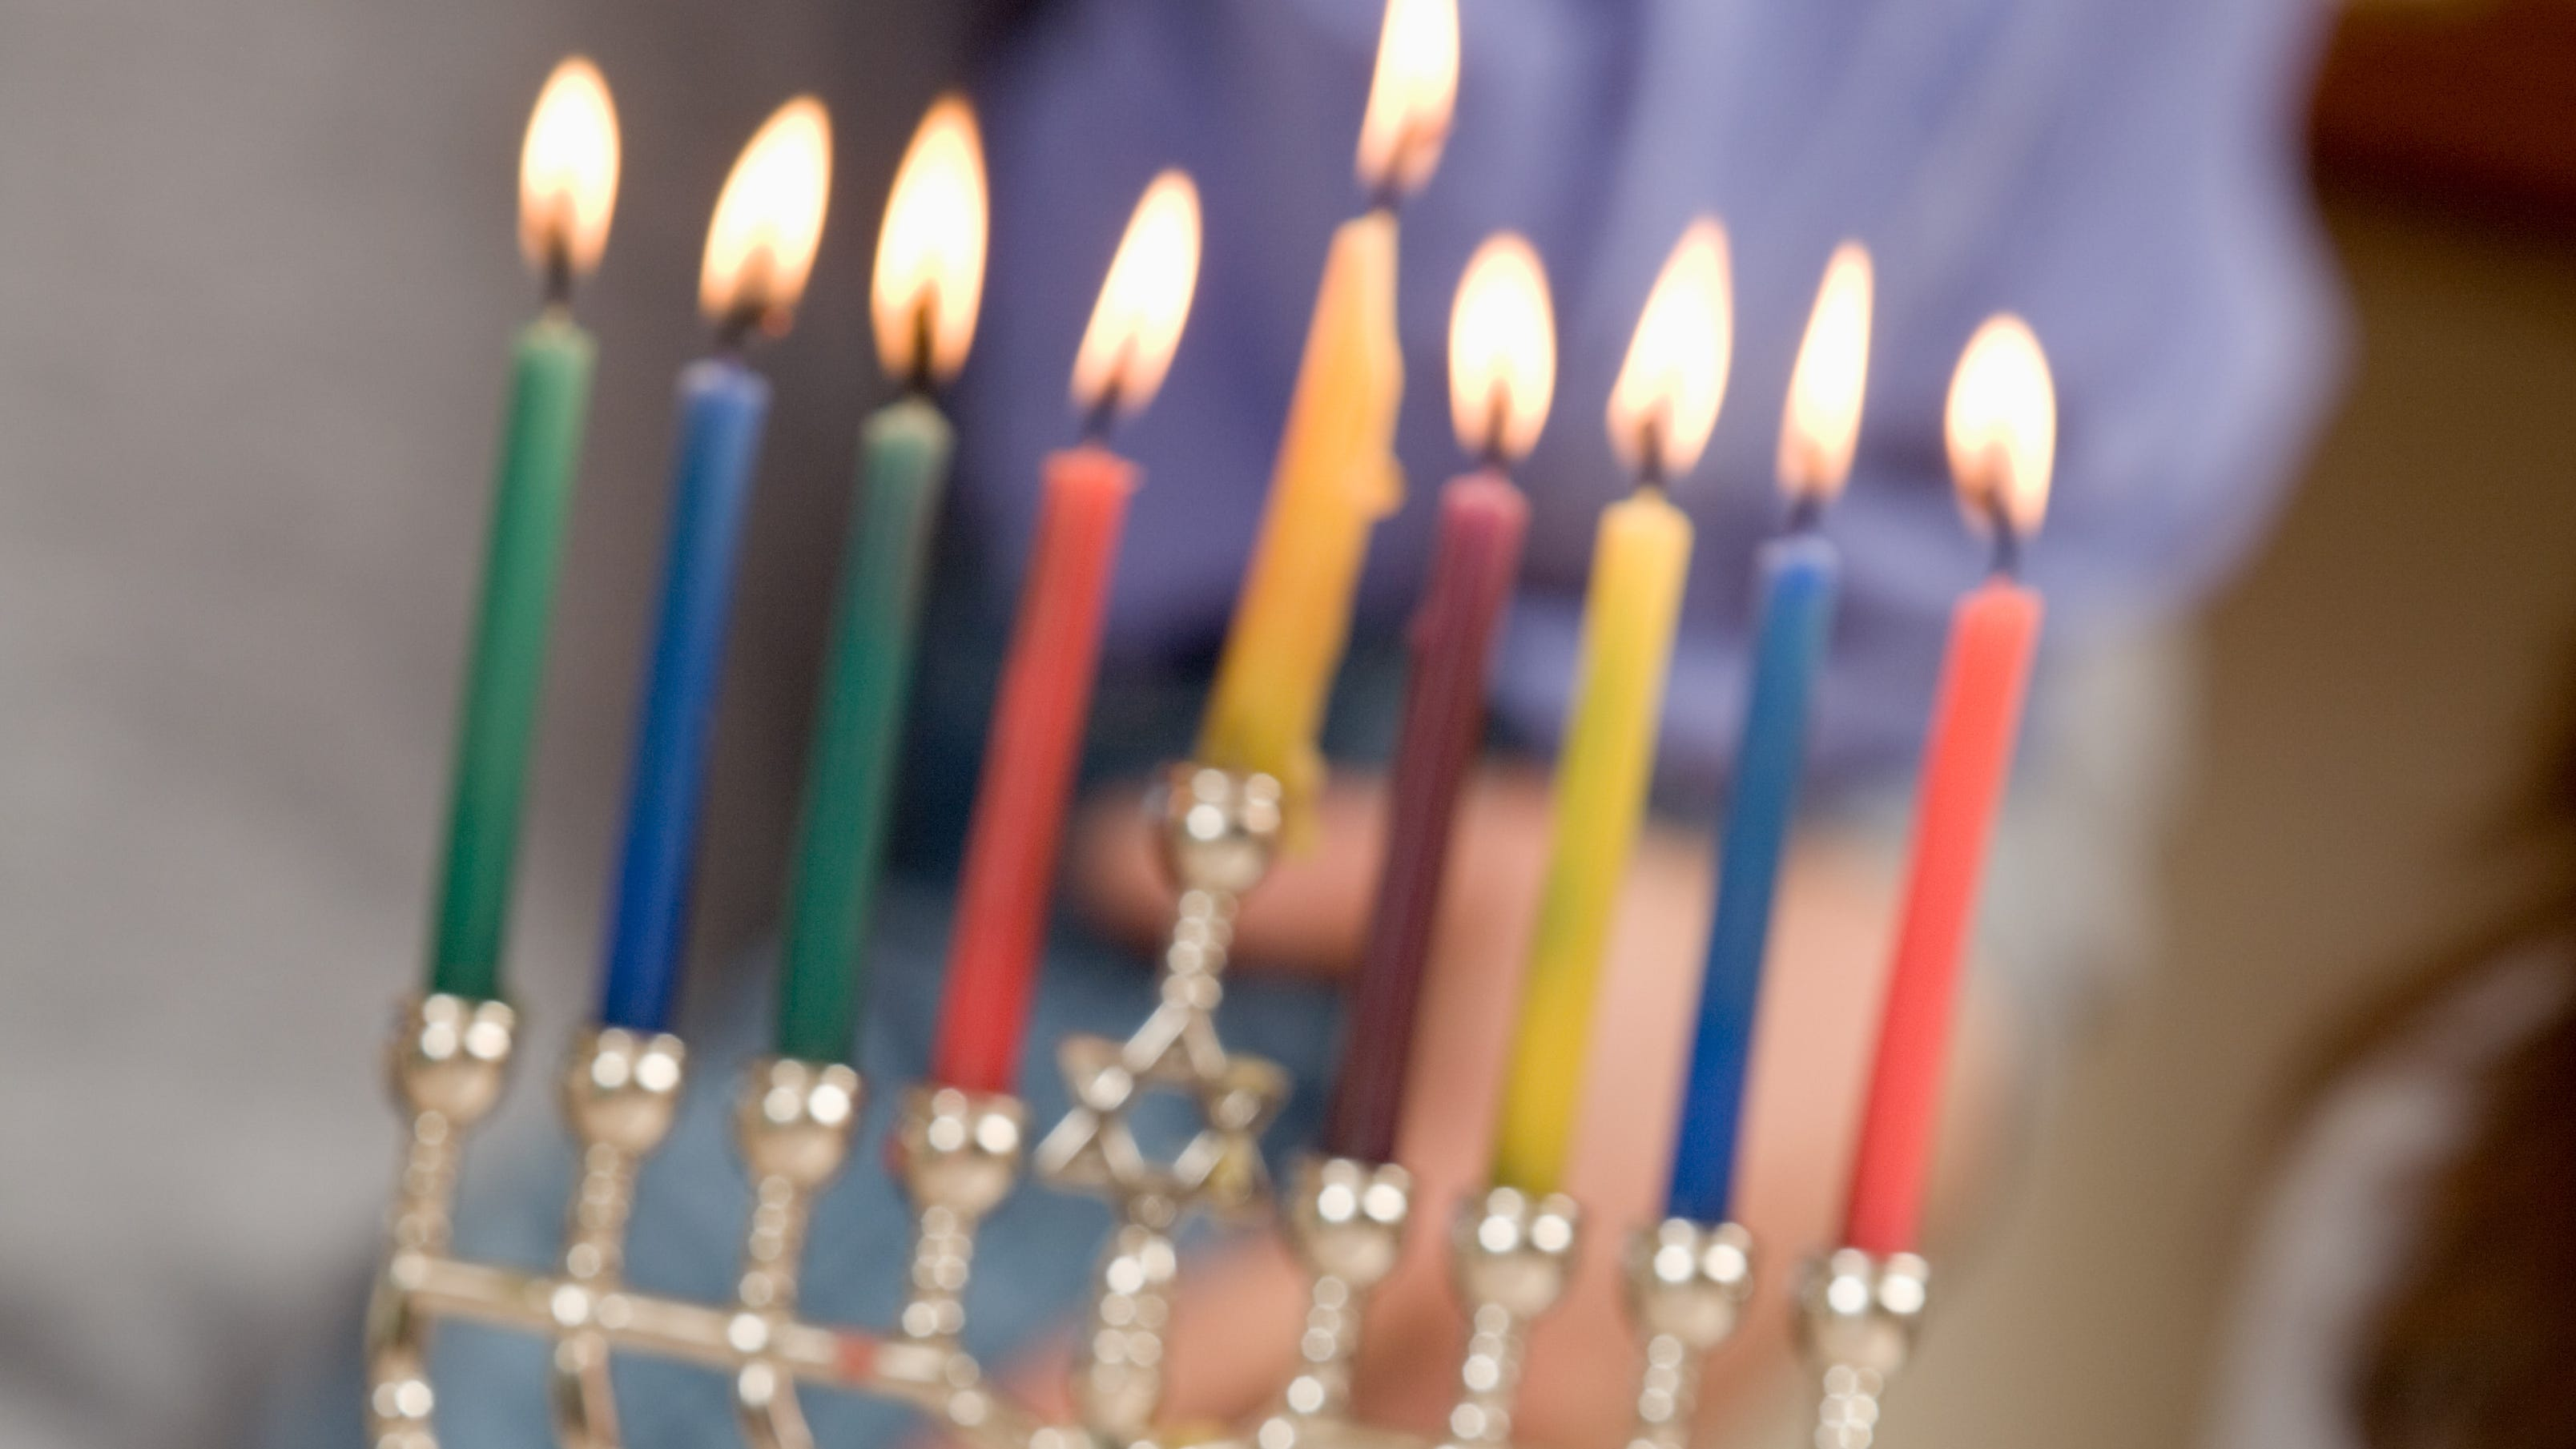 Hanukkah was originally a minor celebration, but has become the most famous Jewish holiday in America.